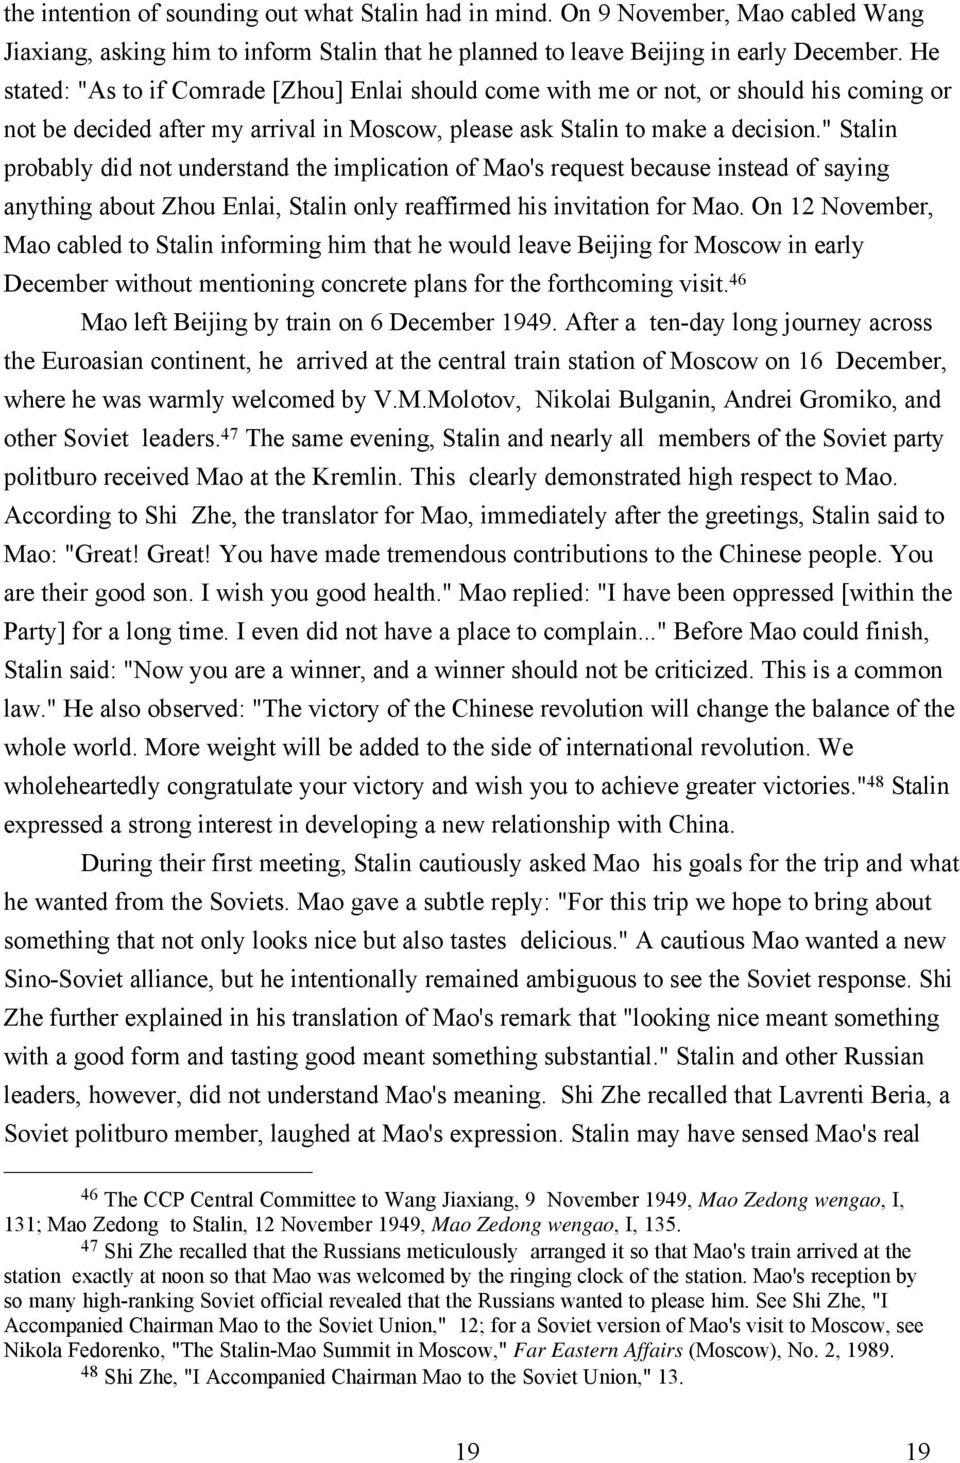 """ Stalin probably did not understand the implication of Mao's request because instead of saying anything about Zhou Enlai, Stalin only reaffirmed his invitation for Mao."